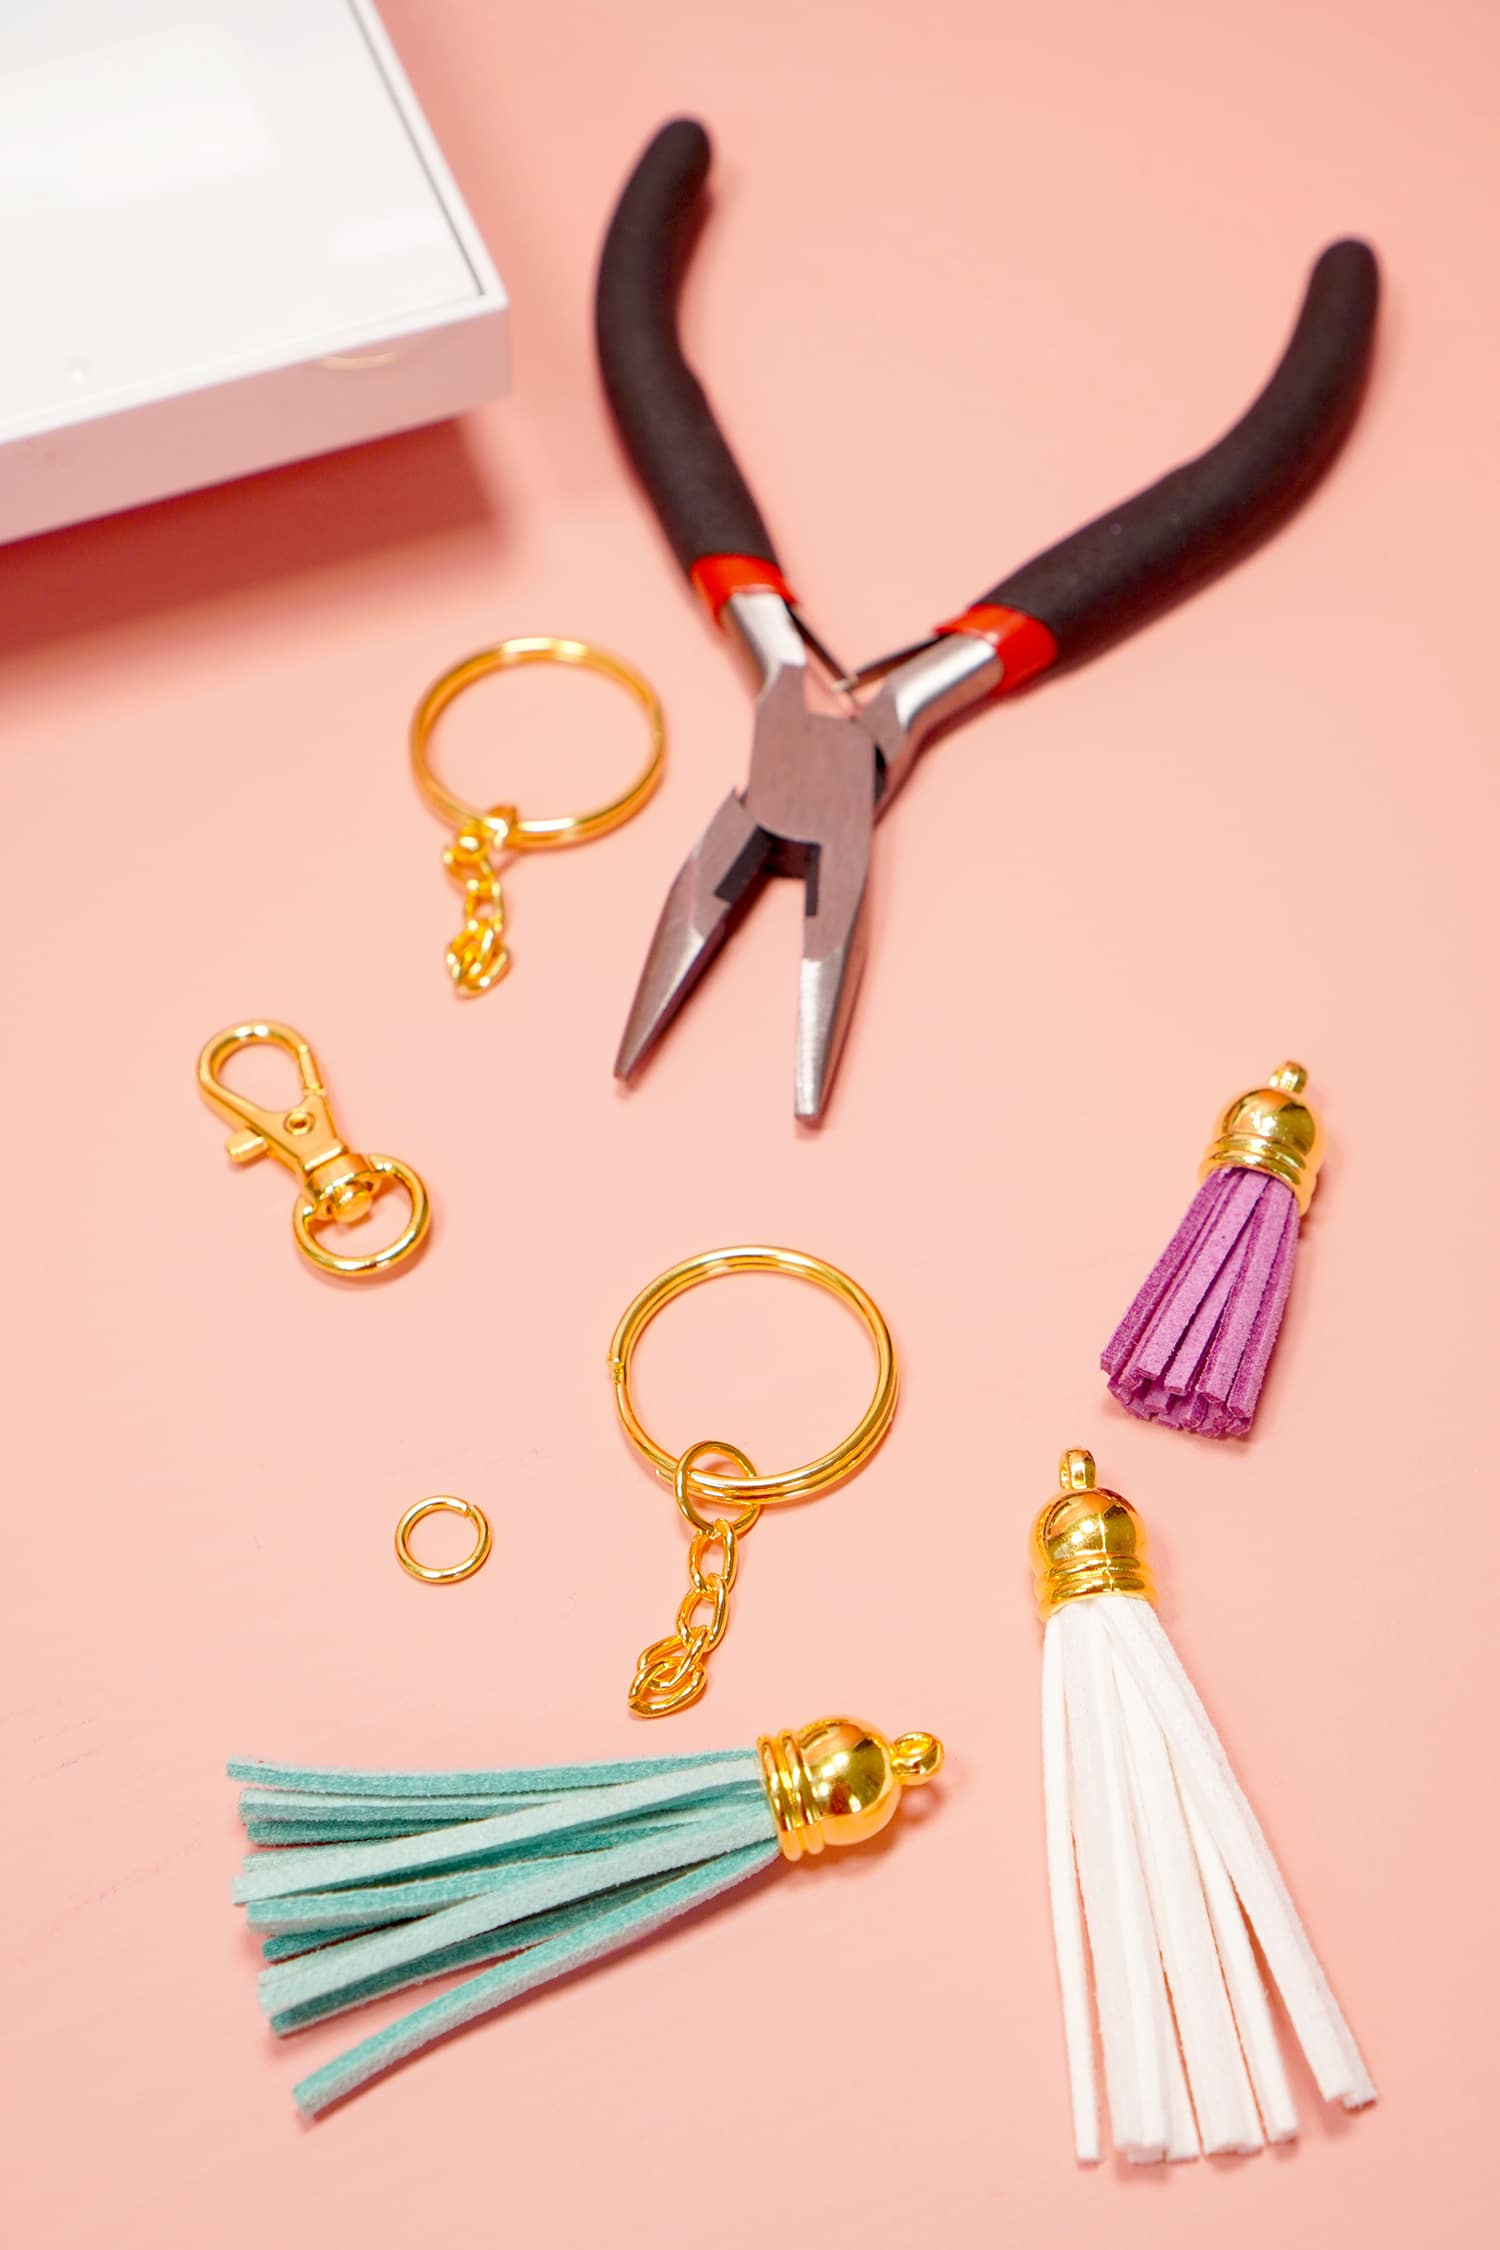 Jewelry and keychain making supplies on a peach background